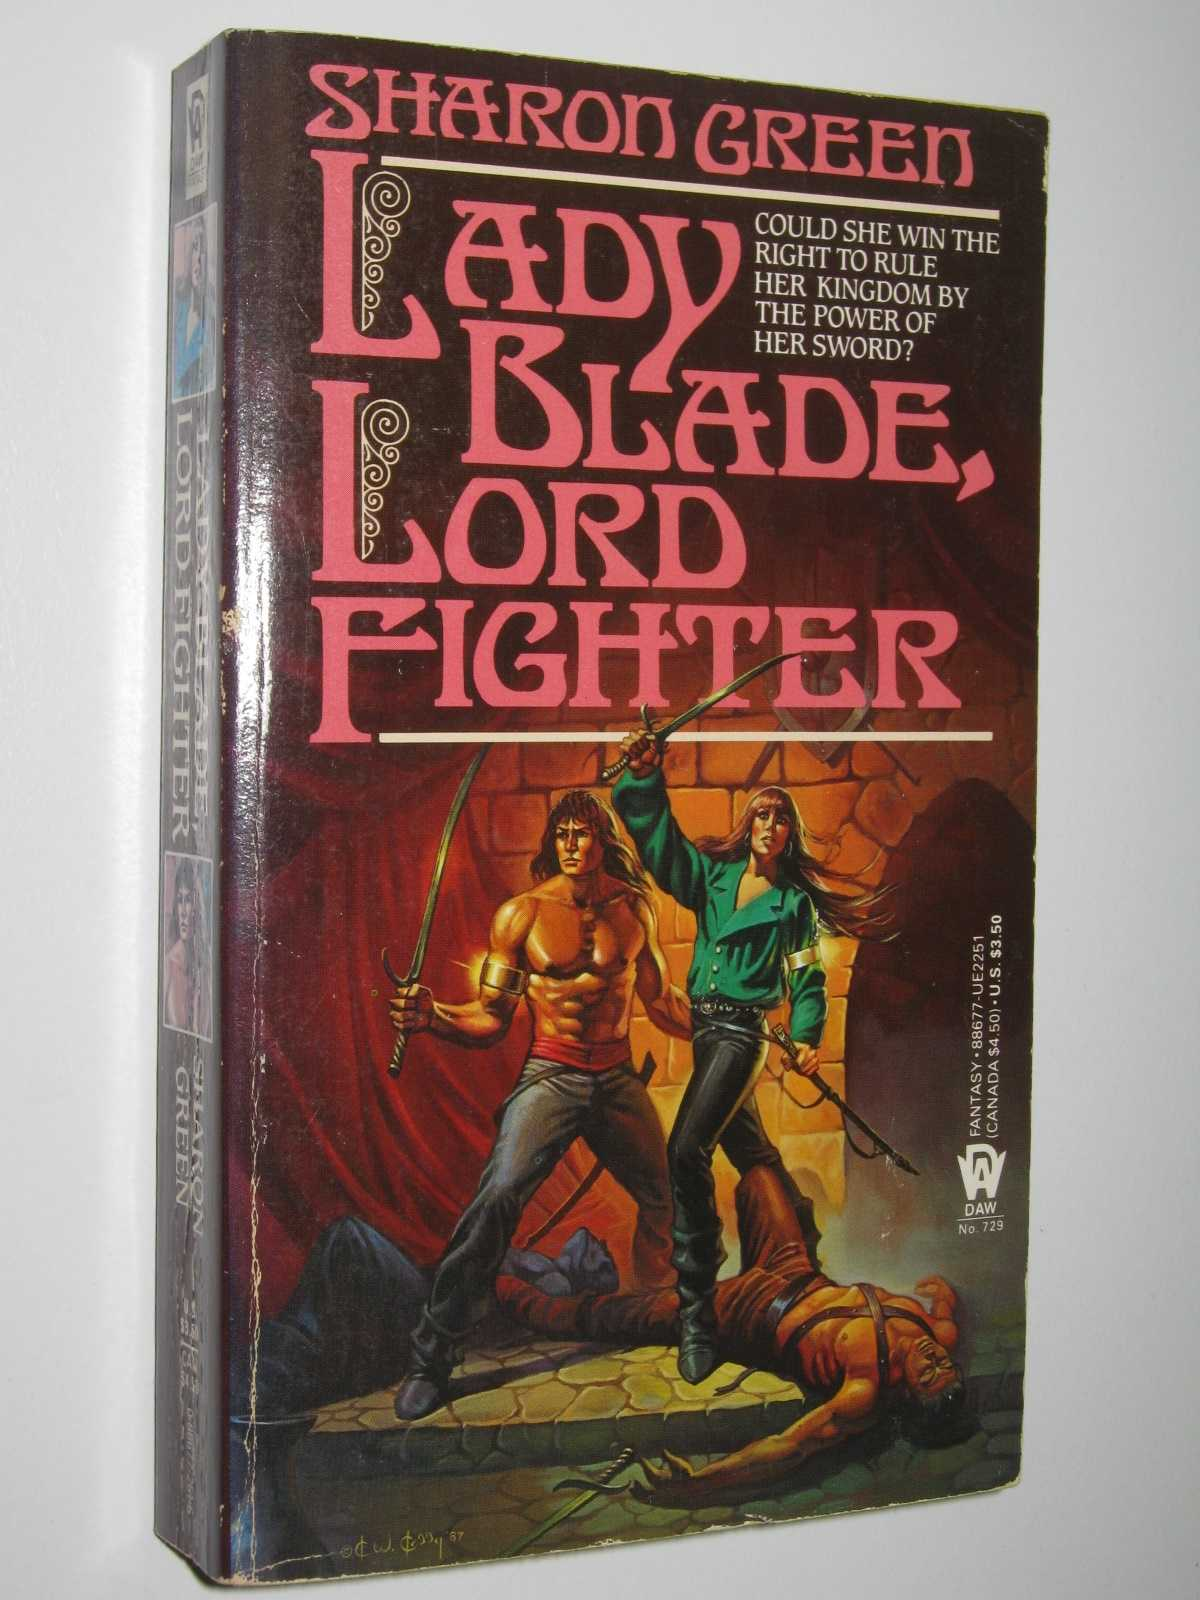 Image for Lady Blade, Lord Fighter